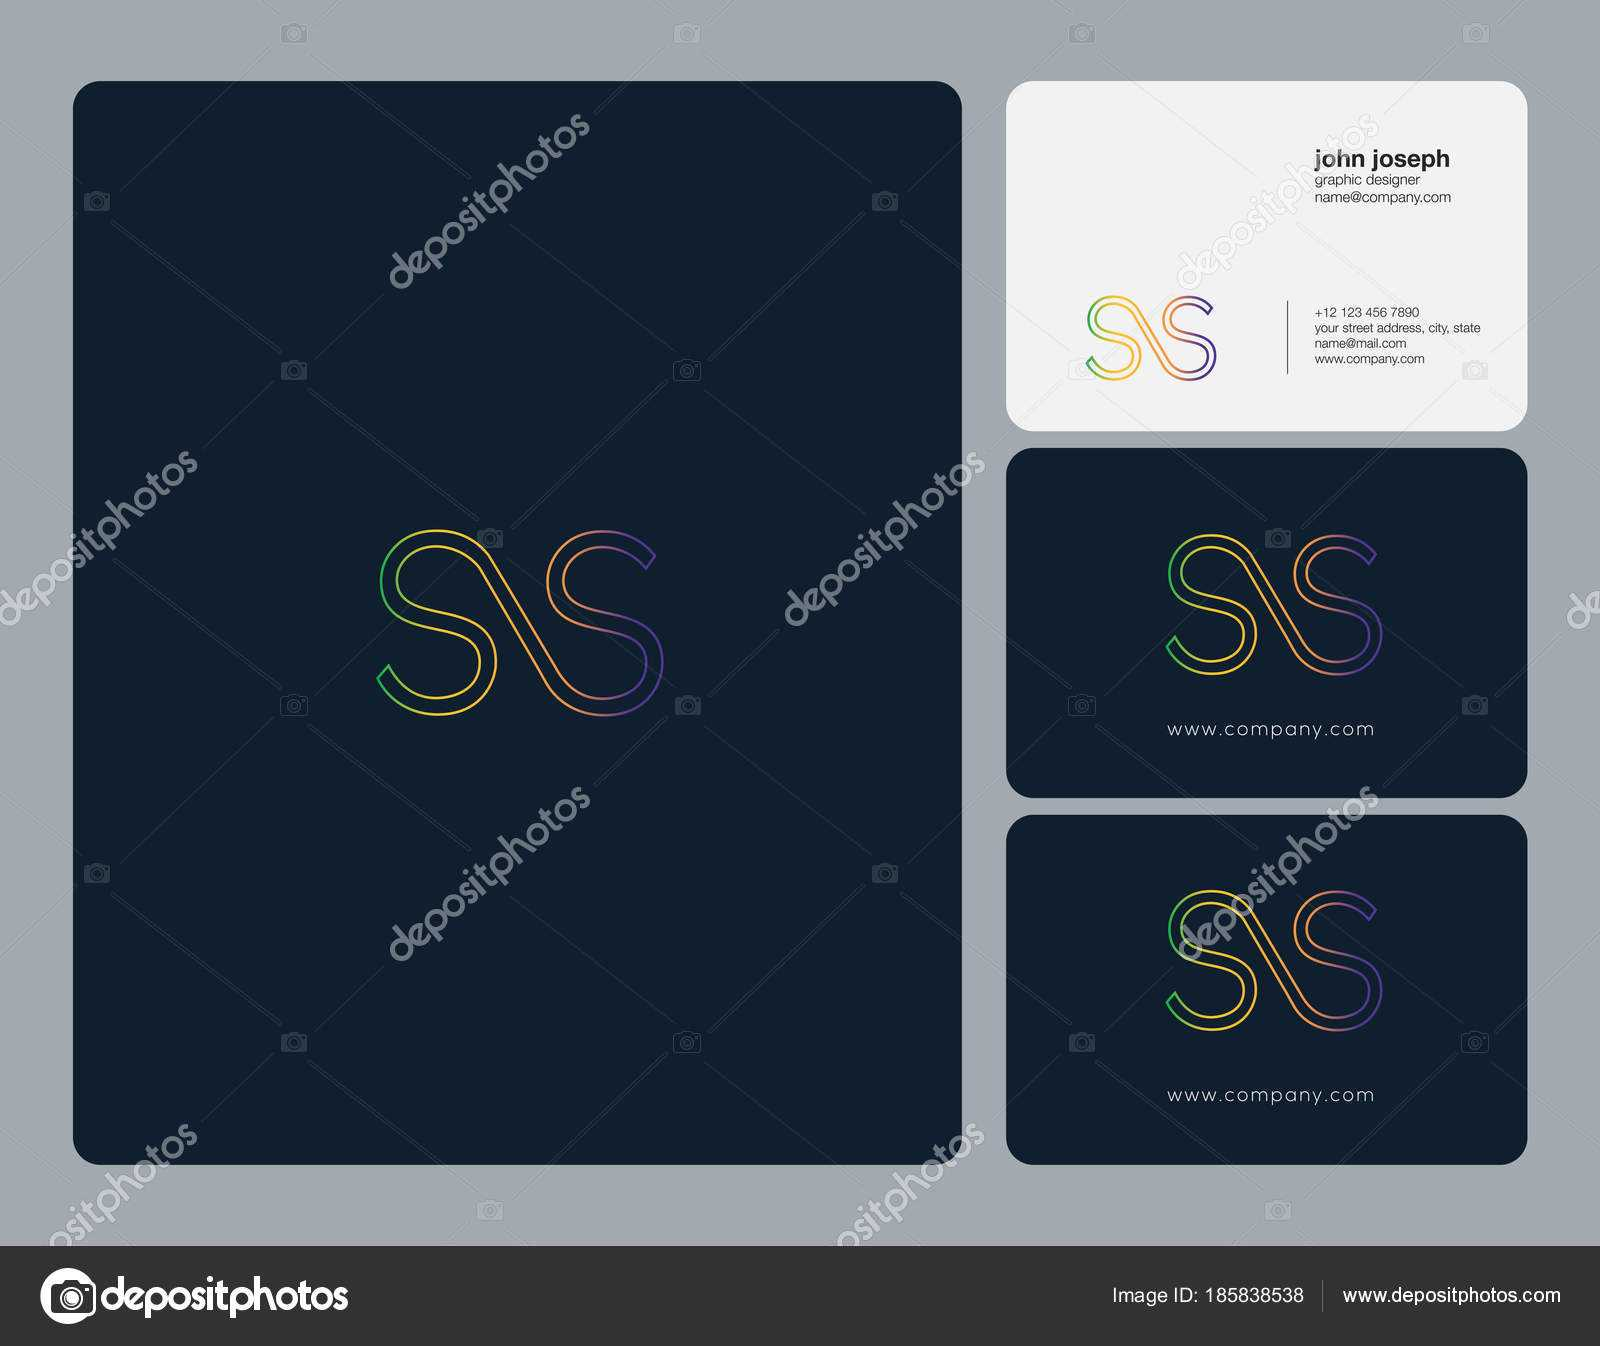 Ss Card Template | Joint Letters Logo Business Card Template In Ss Card Template